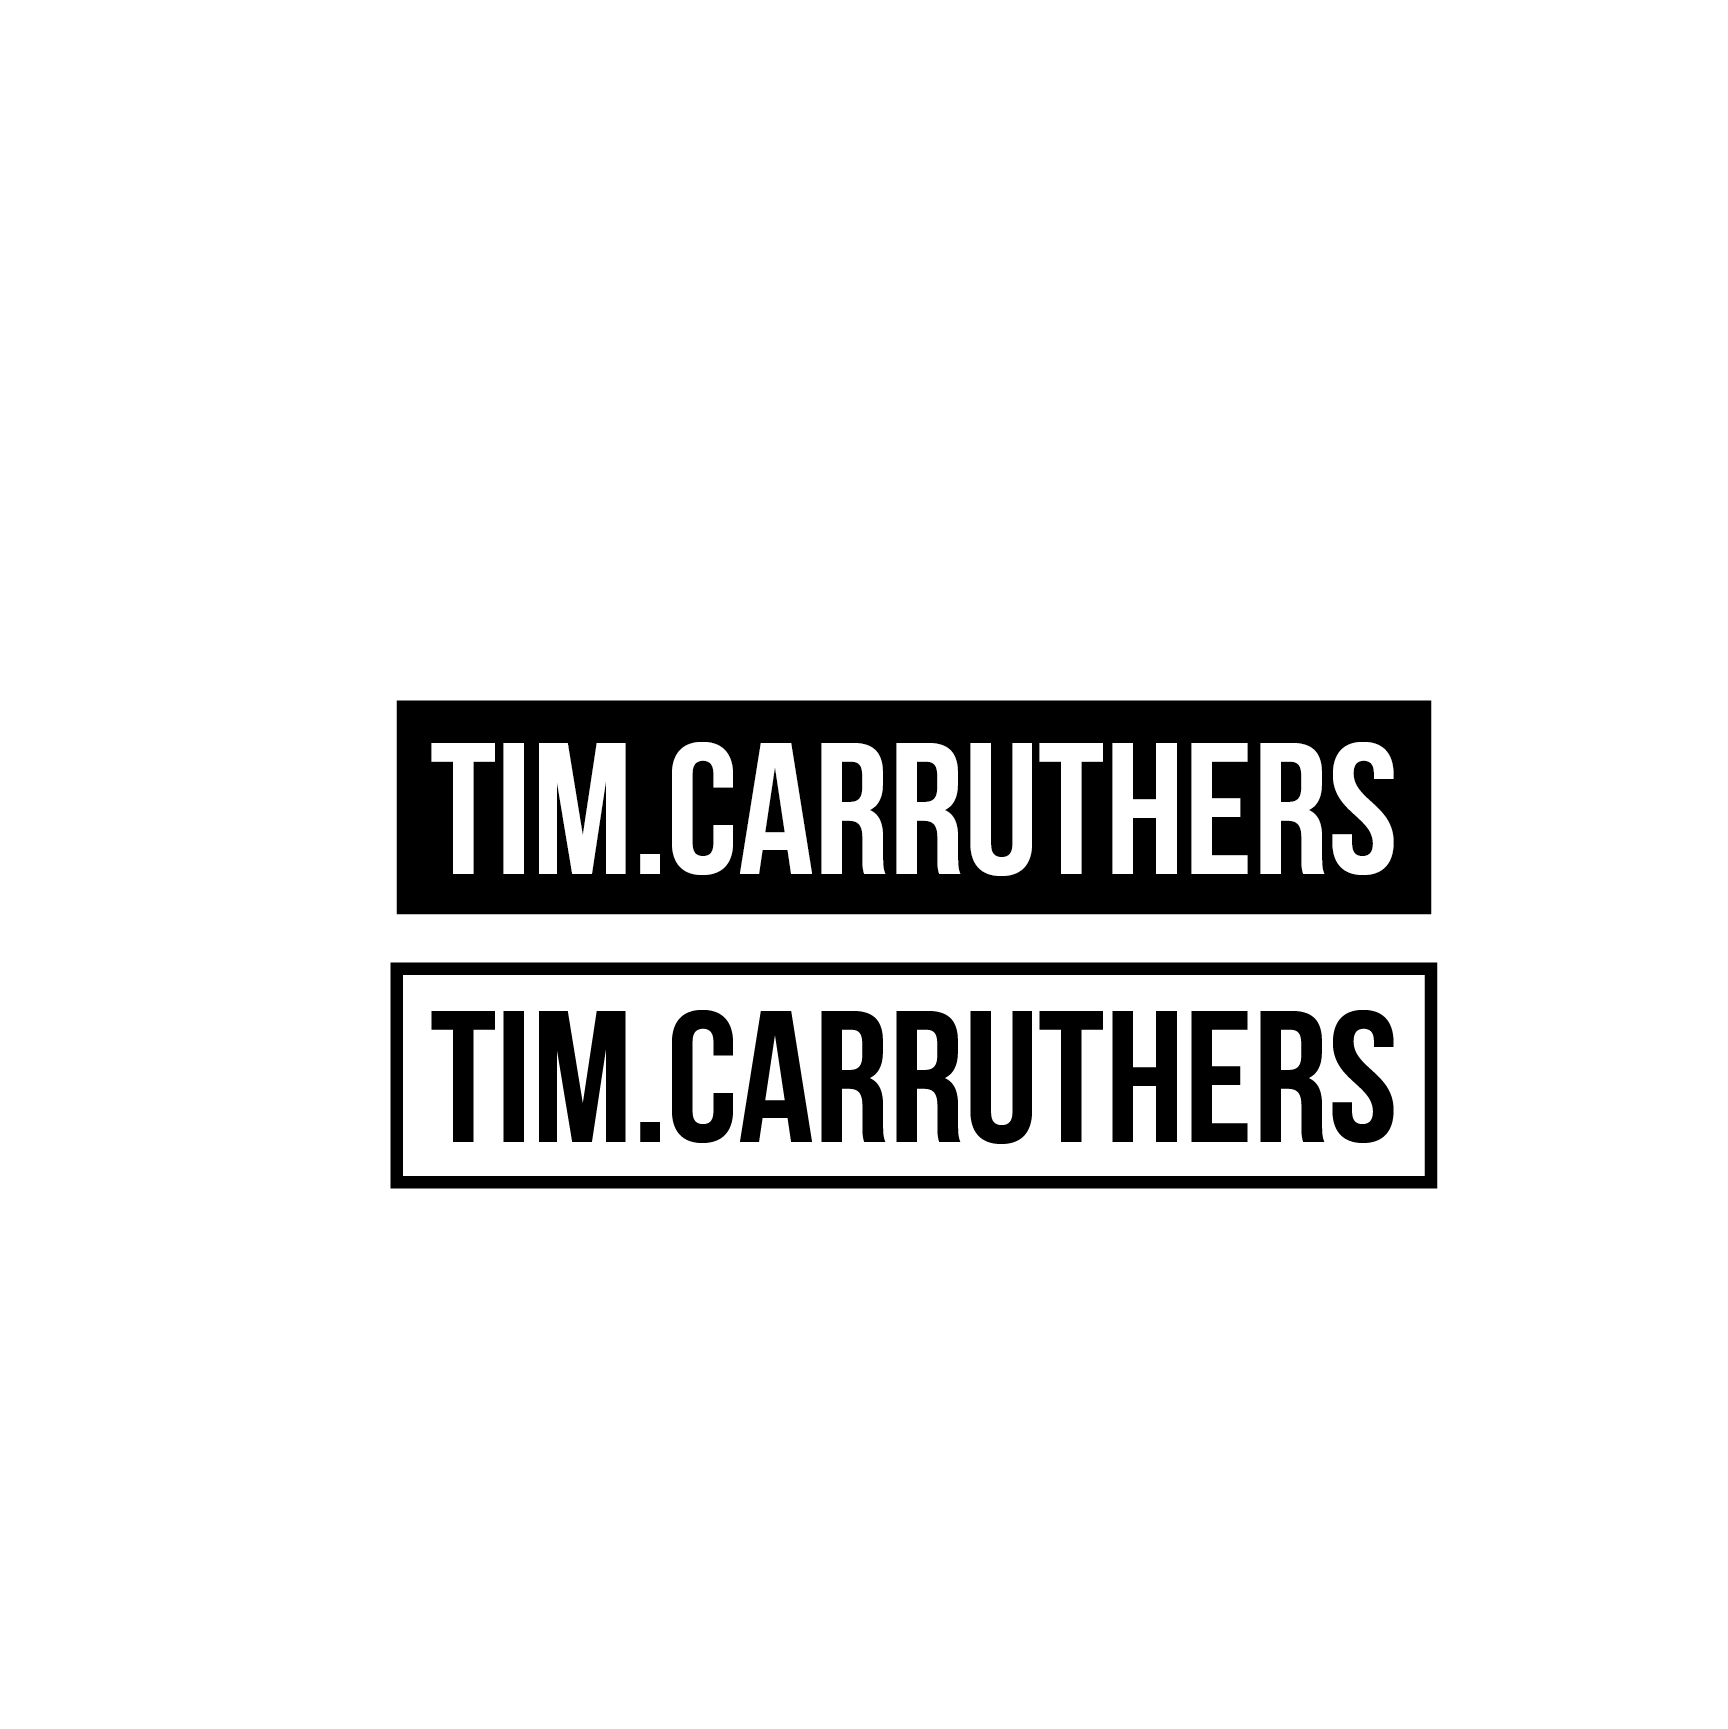 Tim Carruthers